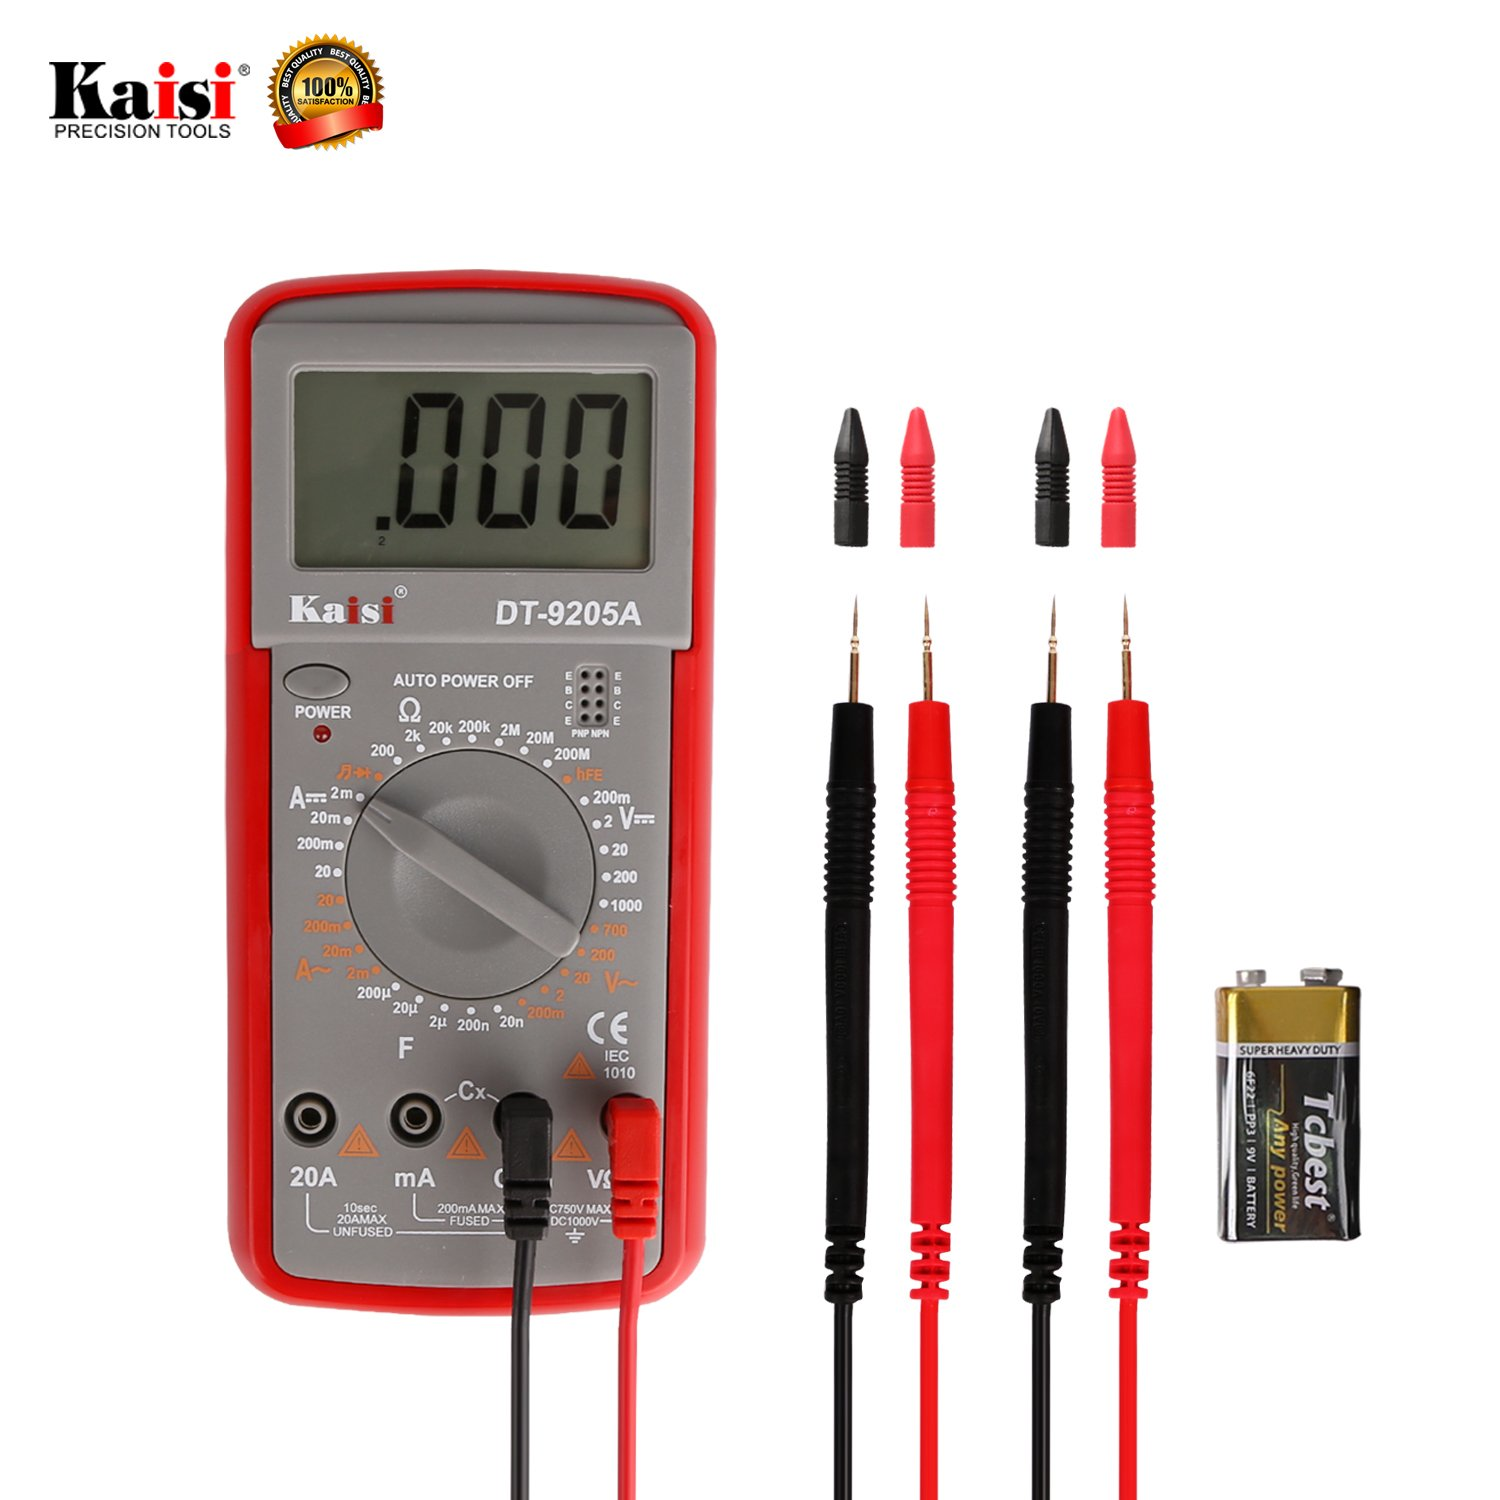 Electronic Volt Amp Ohm Meter Multimeter with Diode and Continuity Test, LCD display,Measures Voltage, Current, Resistance, Capacitance, Frequency